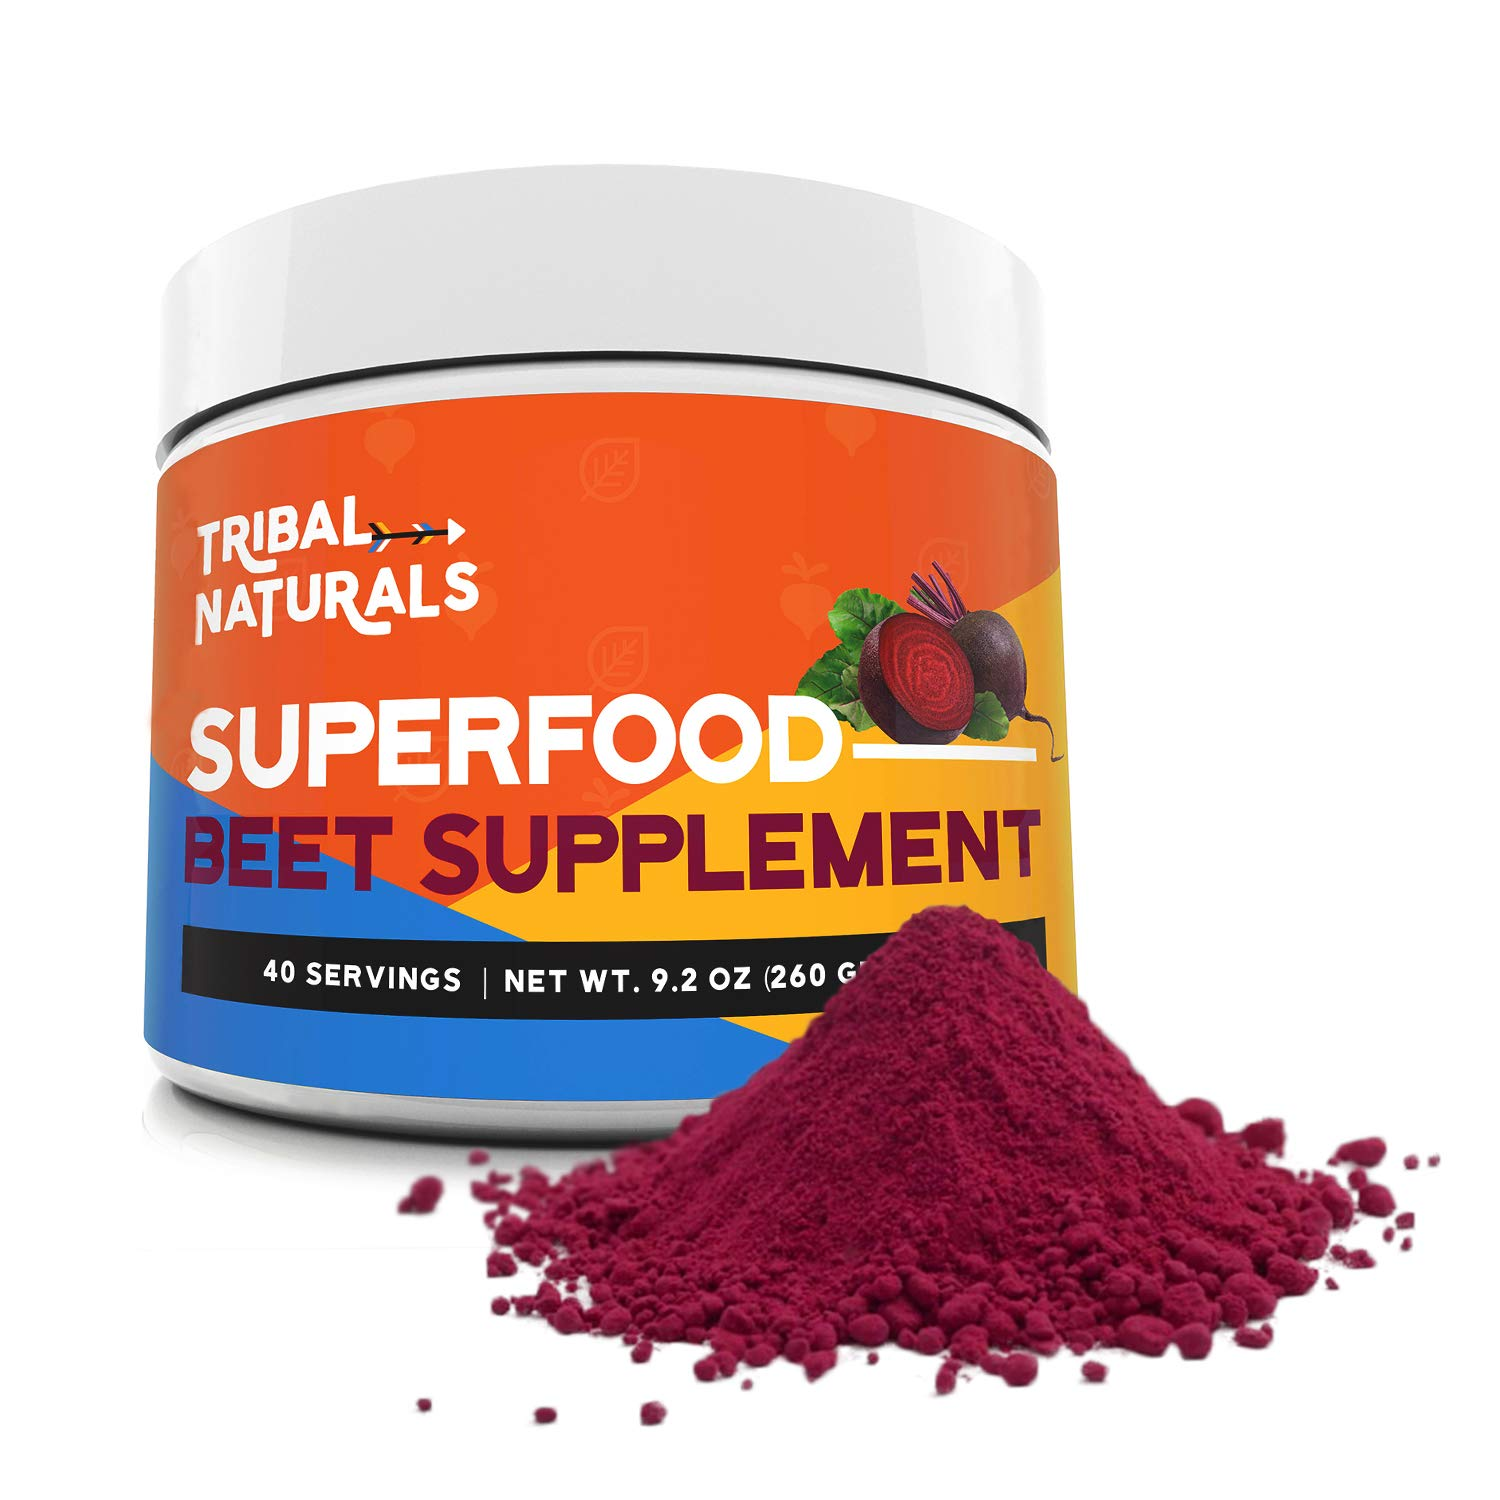 Tribal Naturals Superfood Beet Supplement, 9.2oz Organic Beet Root Powder, Beetroot Supplement Nitric Oxide Booster, Pre Workout for Men & Women, Beets Supplement Preworkout Powder Drink (40 Servings) by Tribal Naturals